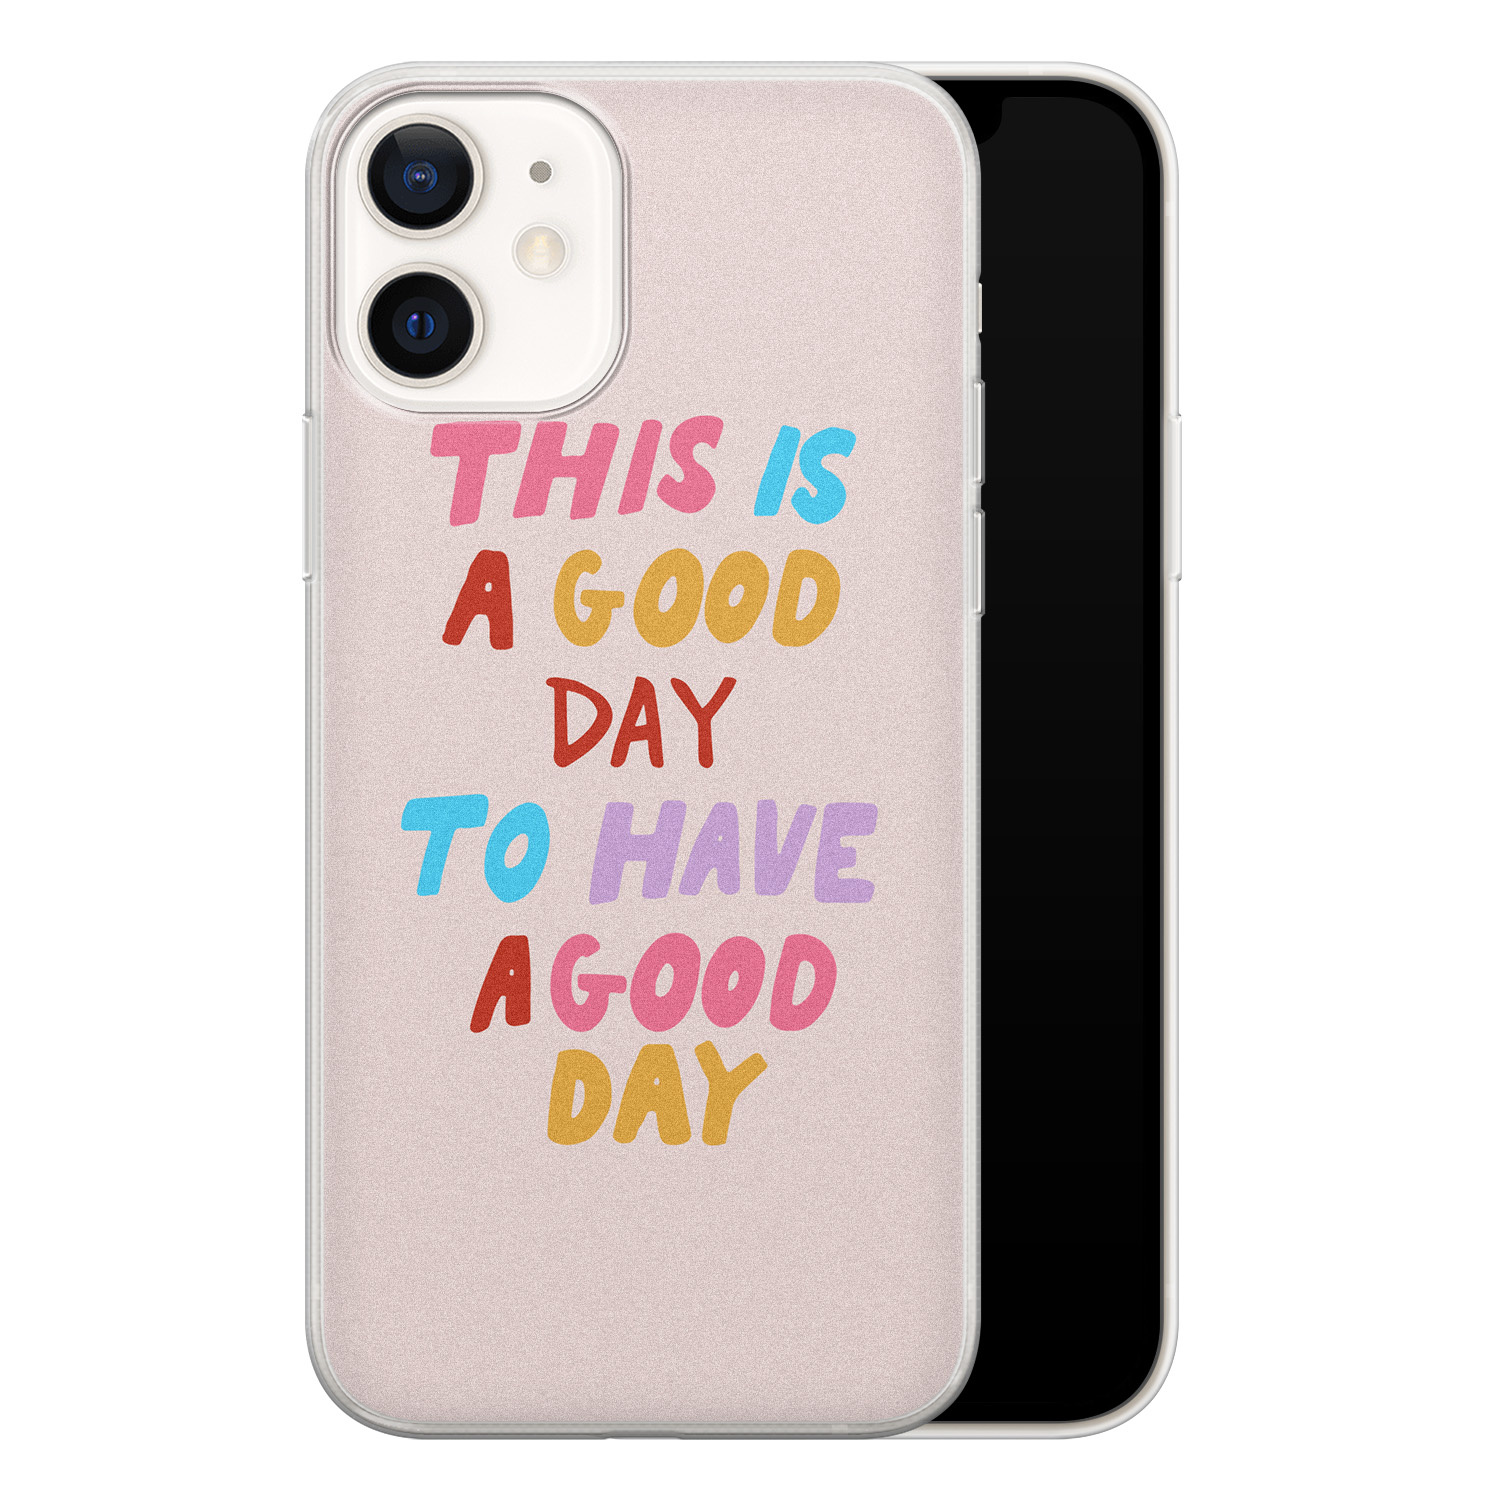 iPhone 12 siliconen hoesje - This is a good day